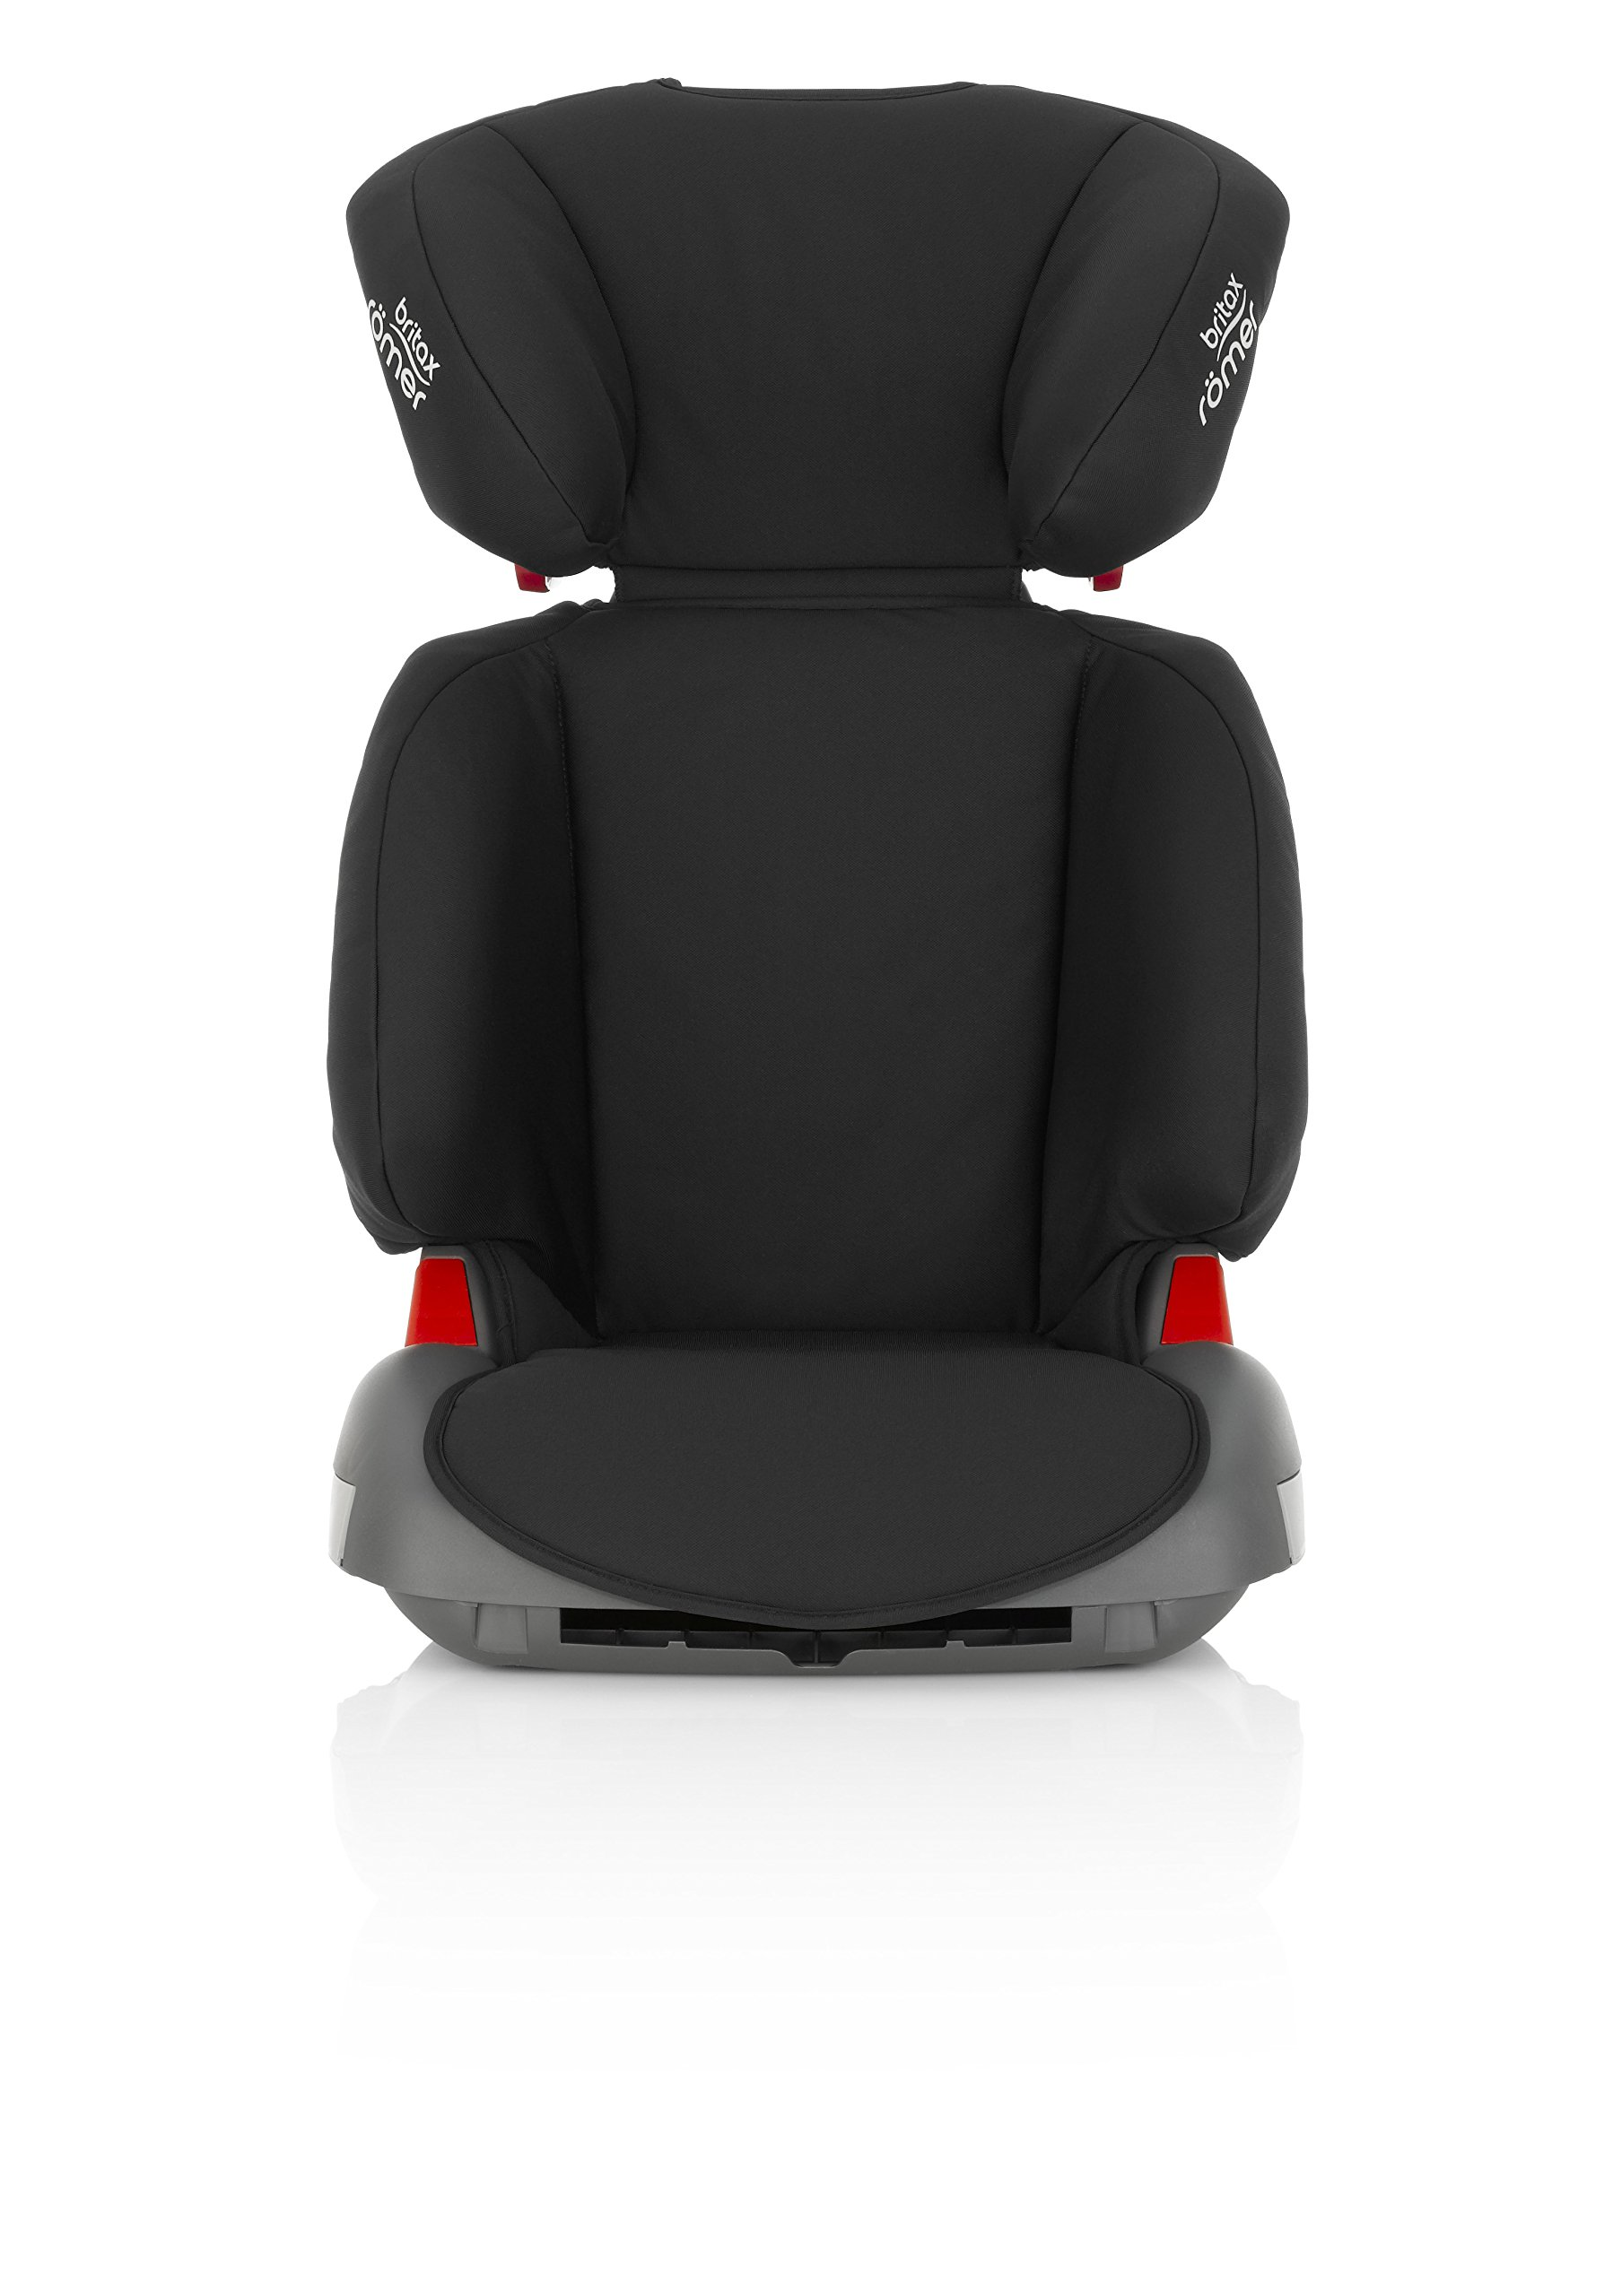 Britax Römer ADVENTURE Group 2-3 (15-36kg) Car Seat - Cosmos Black Britax Römer Intuitively positioned seat belt guides for straightforward installation every time. Machine washable seat cover that can easily be removed, so you can clean up quick and get on your way Reassurance of highback booster safety with side impact protection Lightweight, easily transferable shell 2